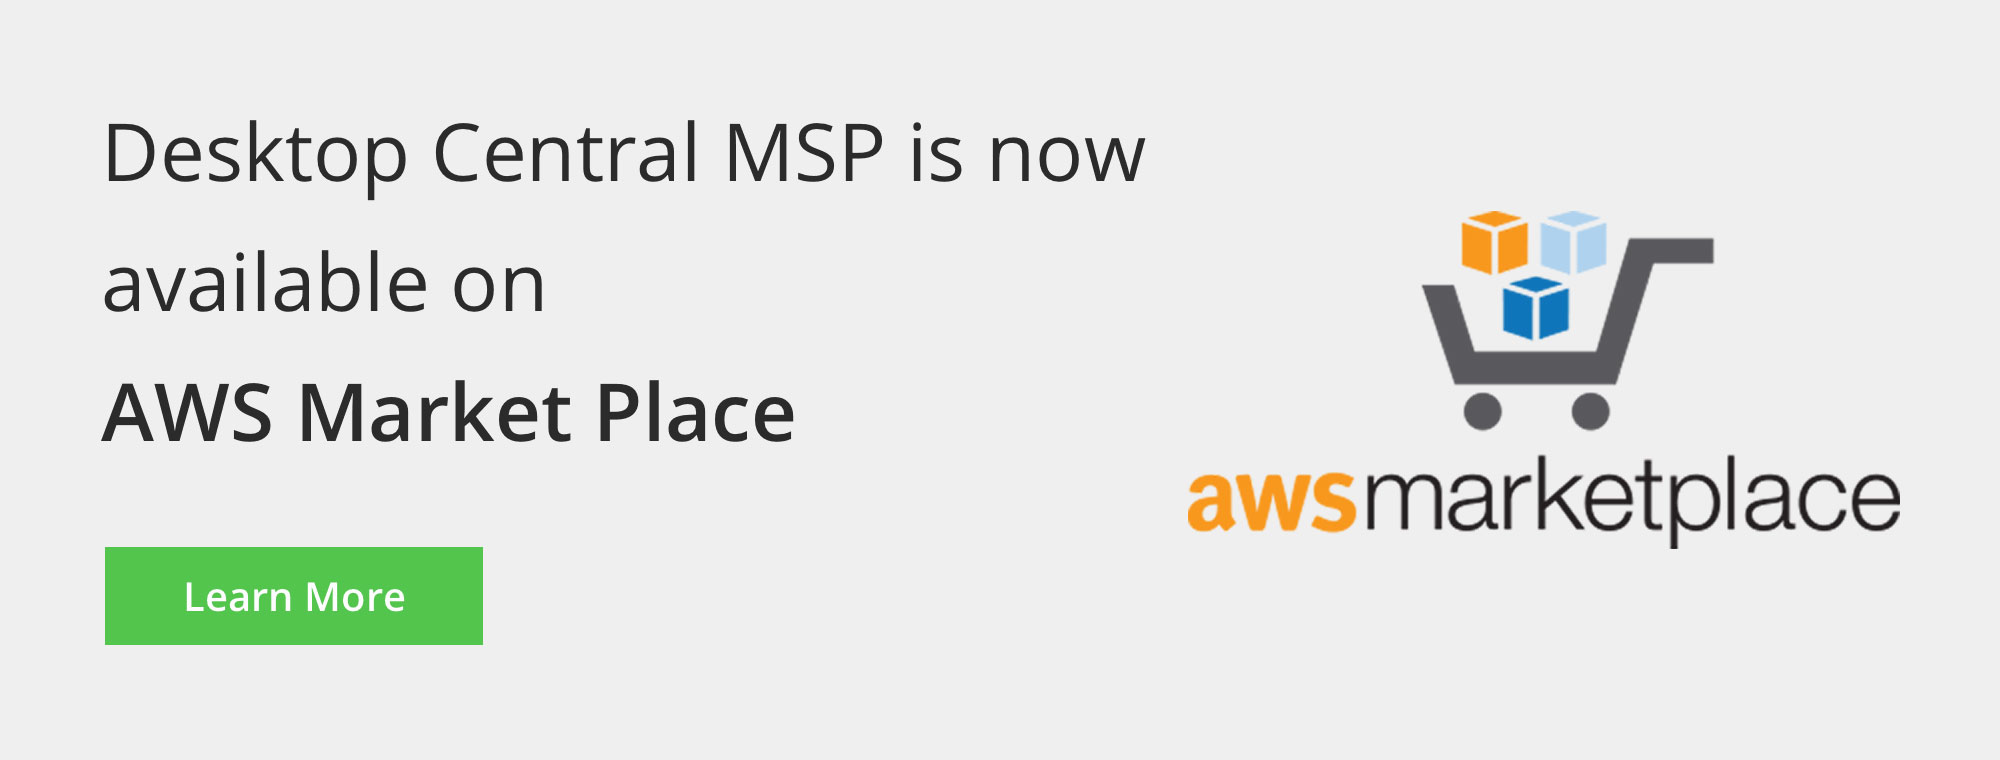 Desktop Central MSP is now on AWS